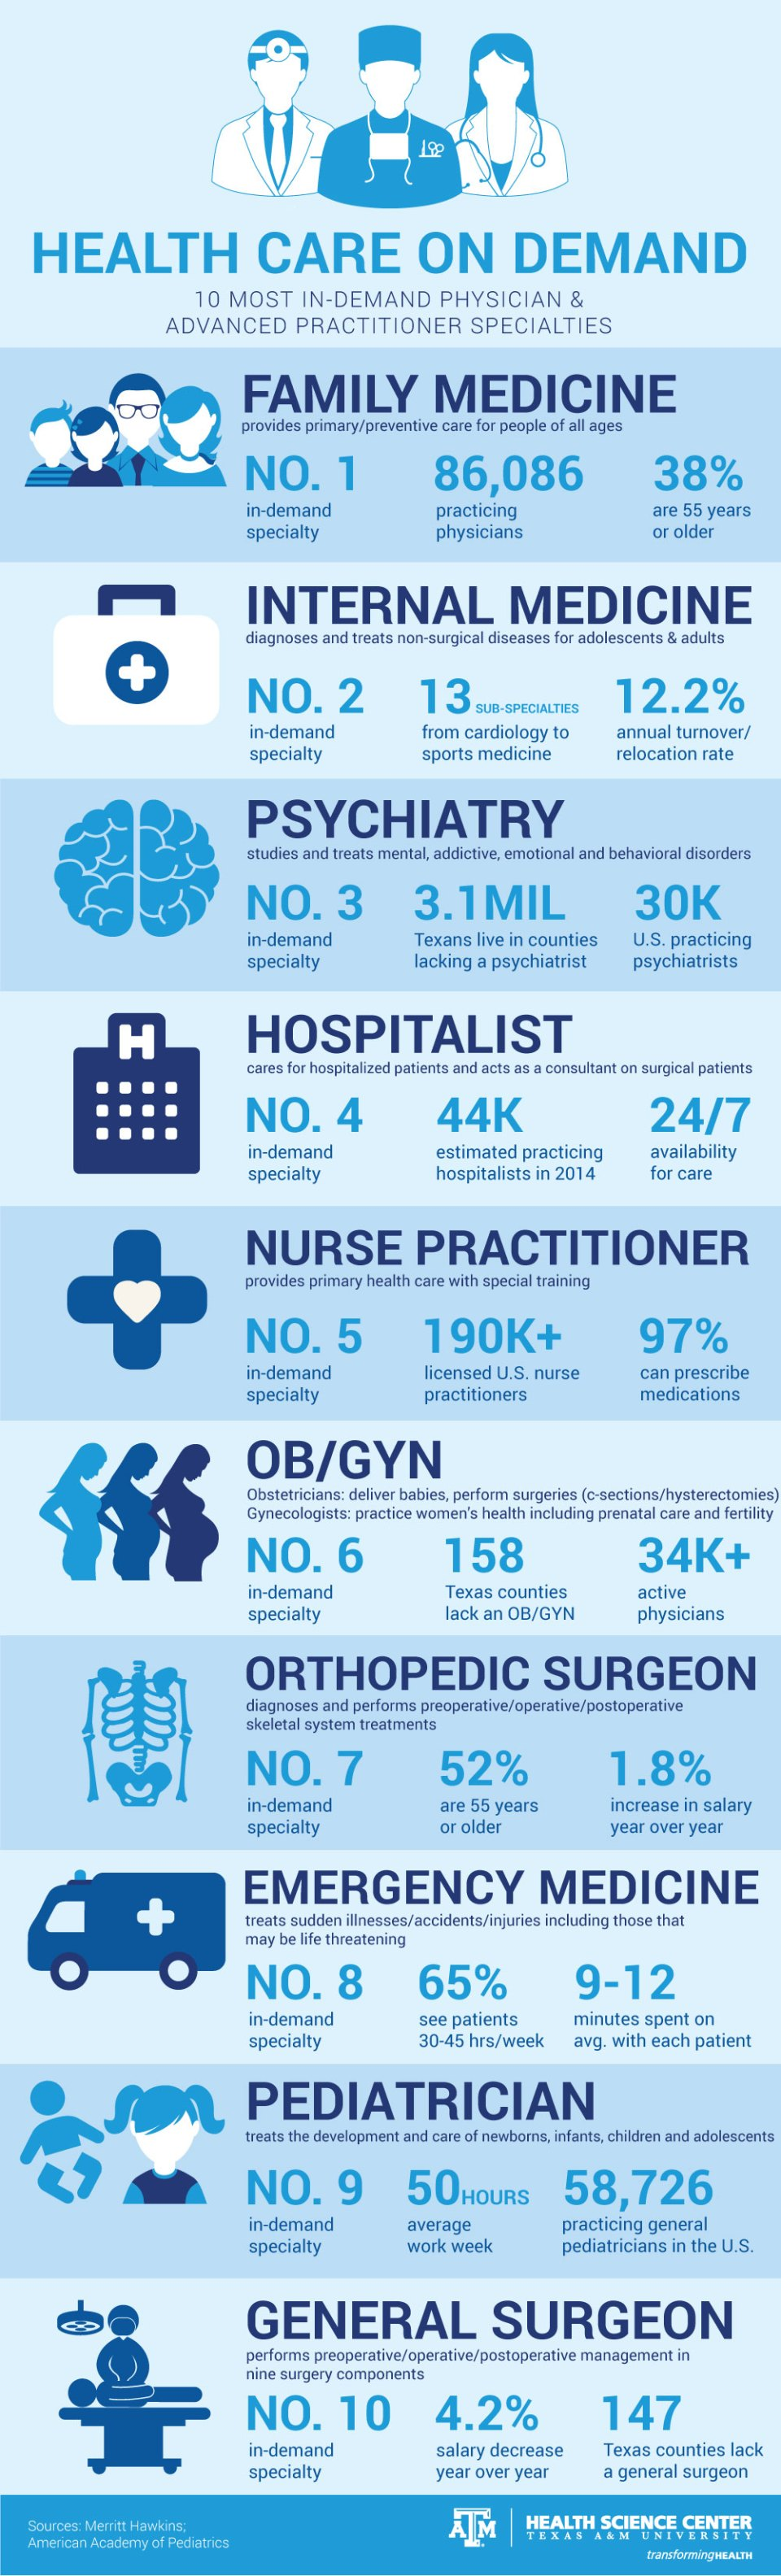 10 most in-demand health care specialties